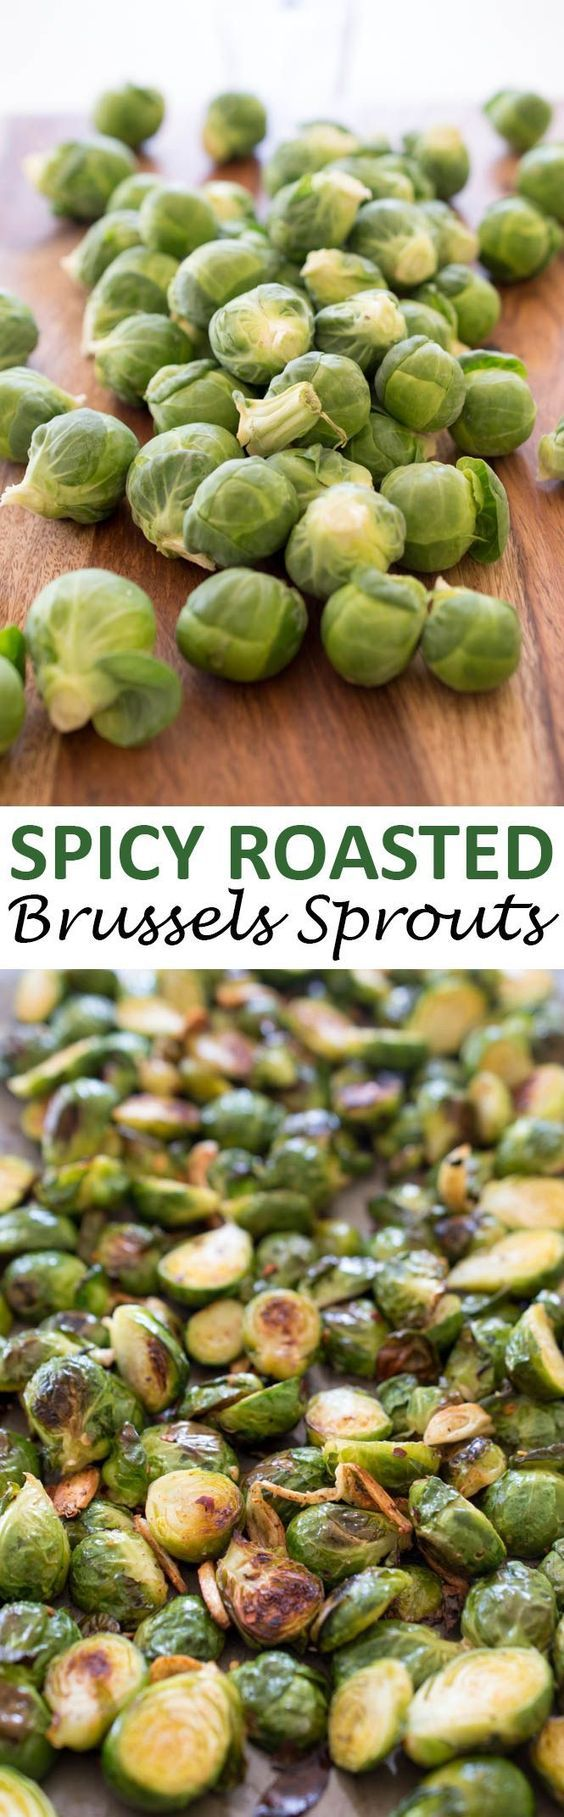 Super Easy Spicy Roasted Garlic Brussels Sprouts. Perfect side  to compliment any meal. Takes less than 30 minutes to make!